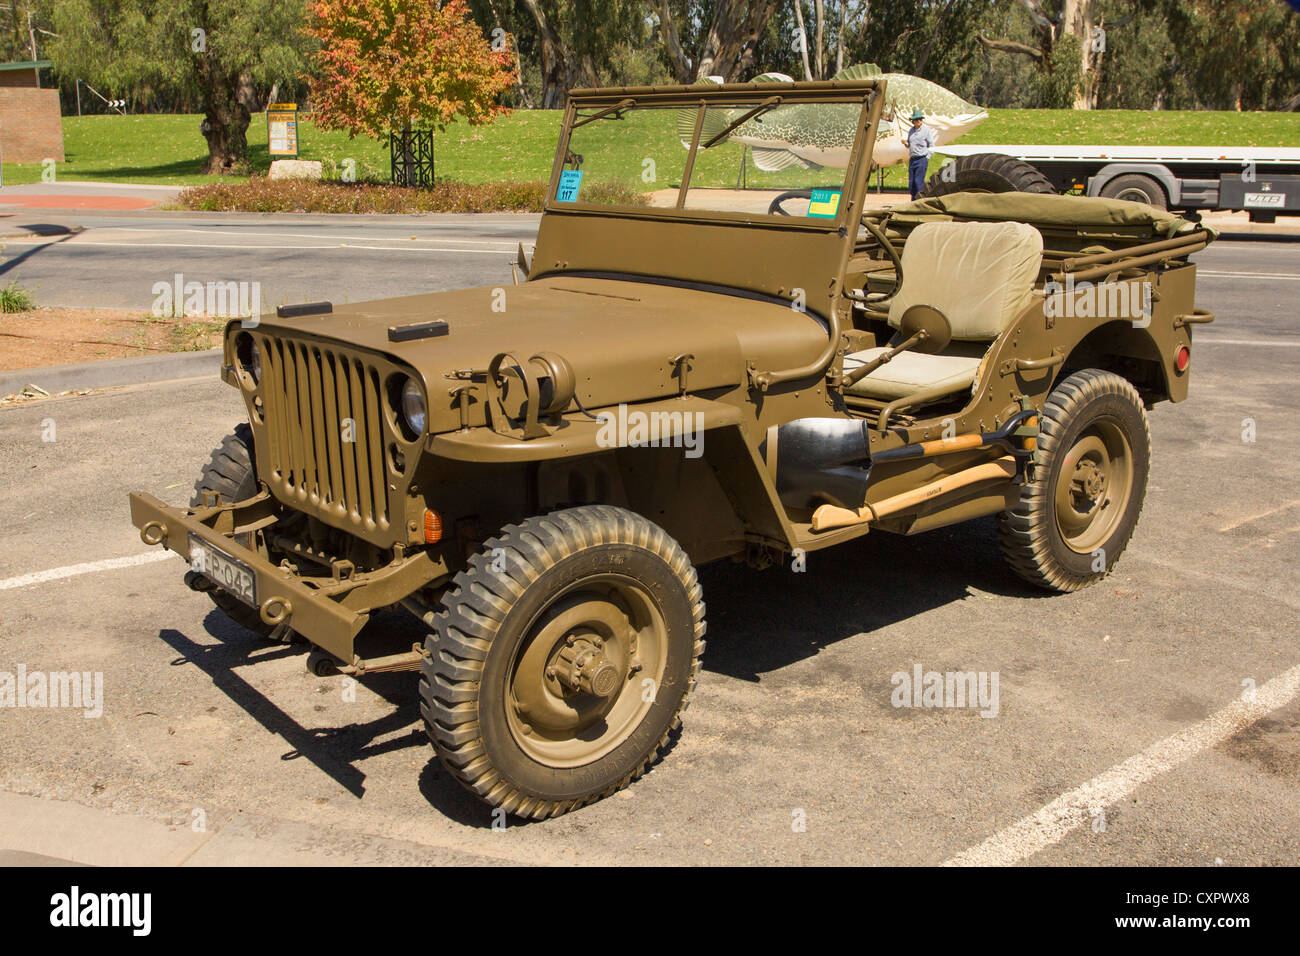 New Jeep Truck >> Willys Jeep Stock Photo: 50905072 - Alamy